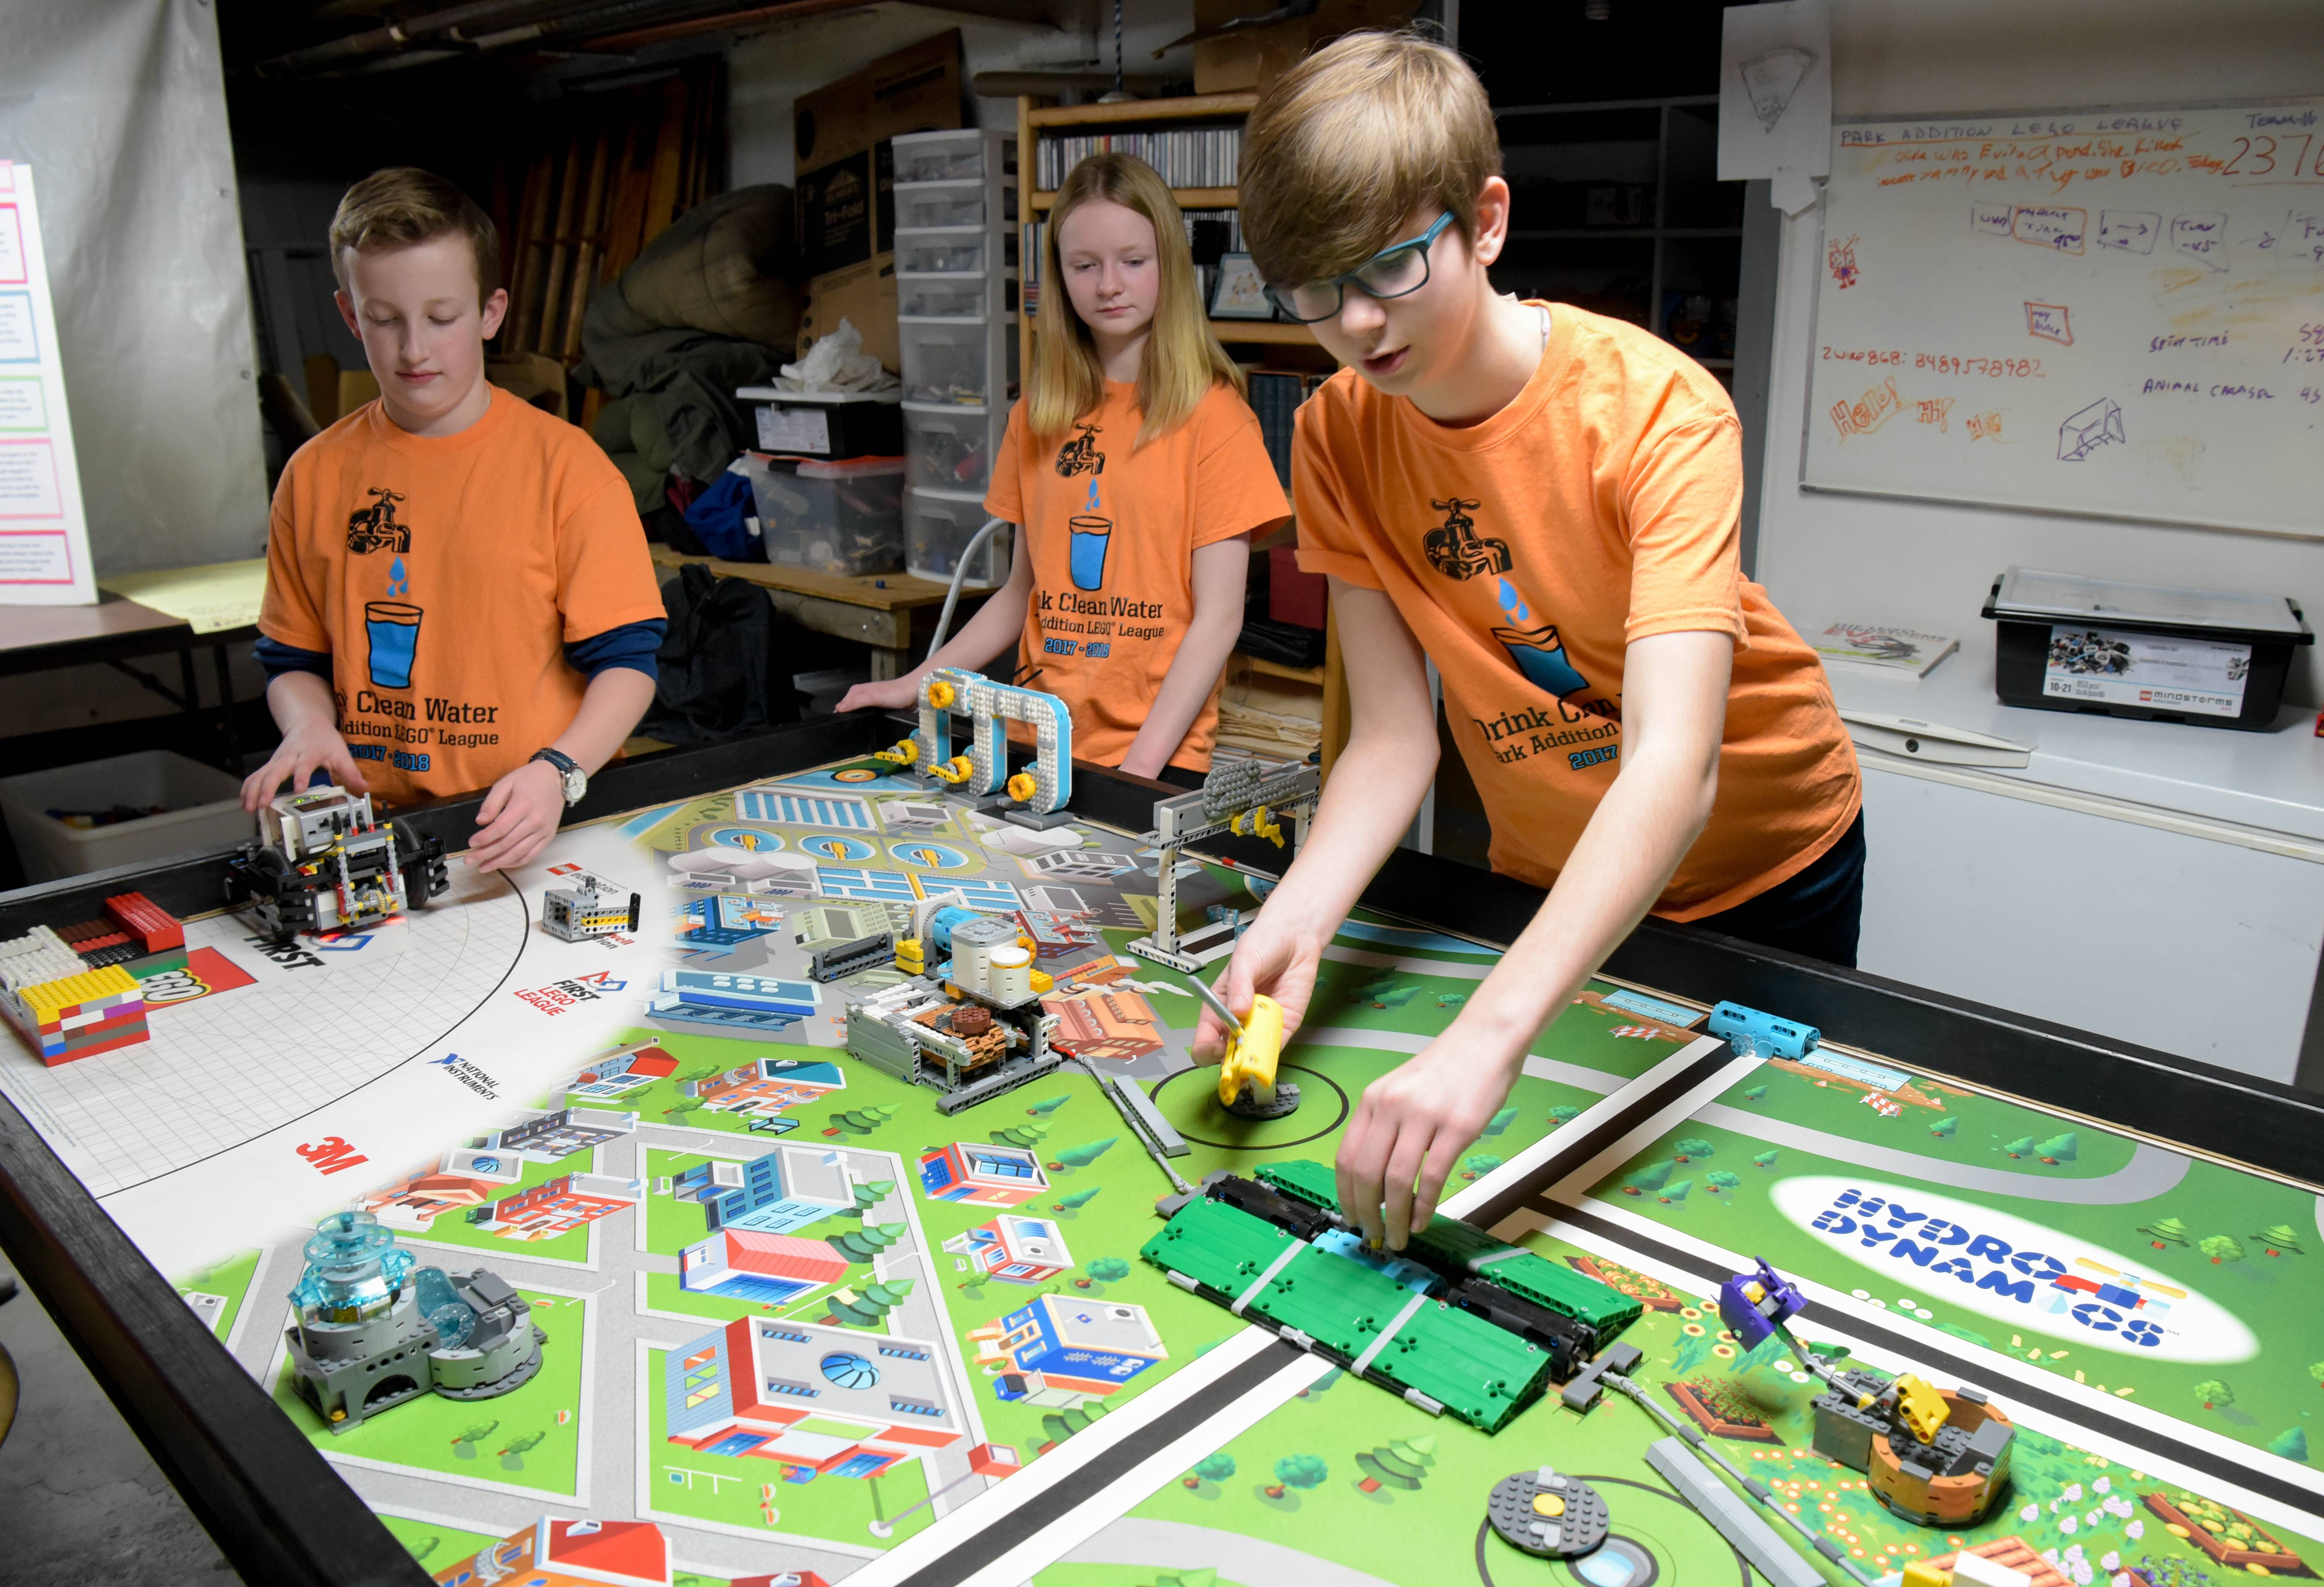 Park Addition Lego League team members Sam Aldrich, Sammy Davies and Katie Meyer explain obstacles on the board their robot will use to accomplish challenges Sunday during a state First Lego League competition in Elgin. See them in action at dailyherald.com/video.